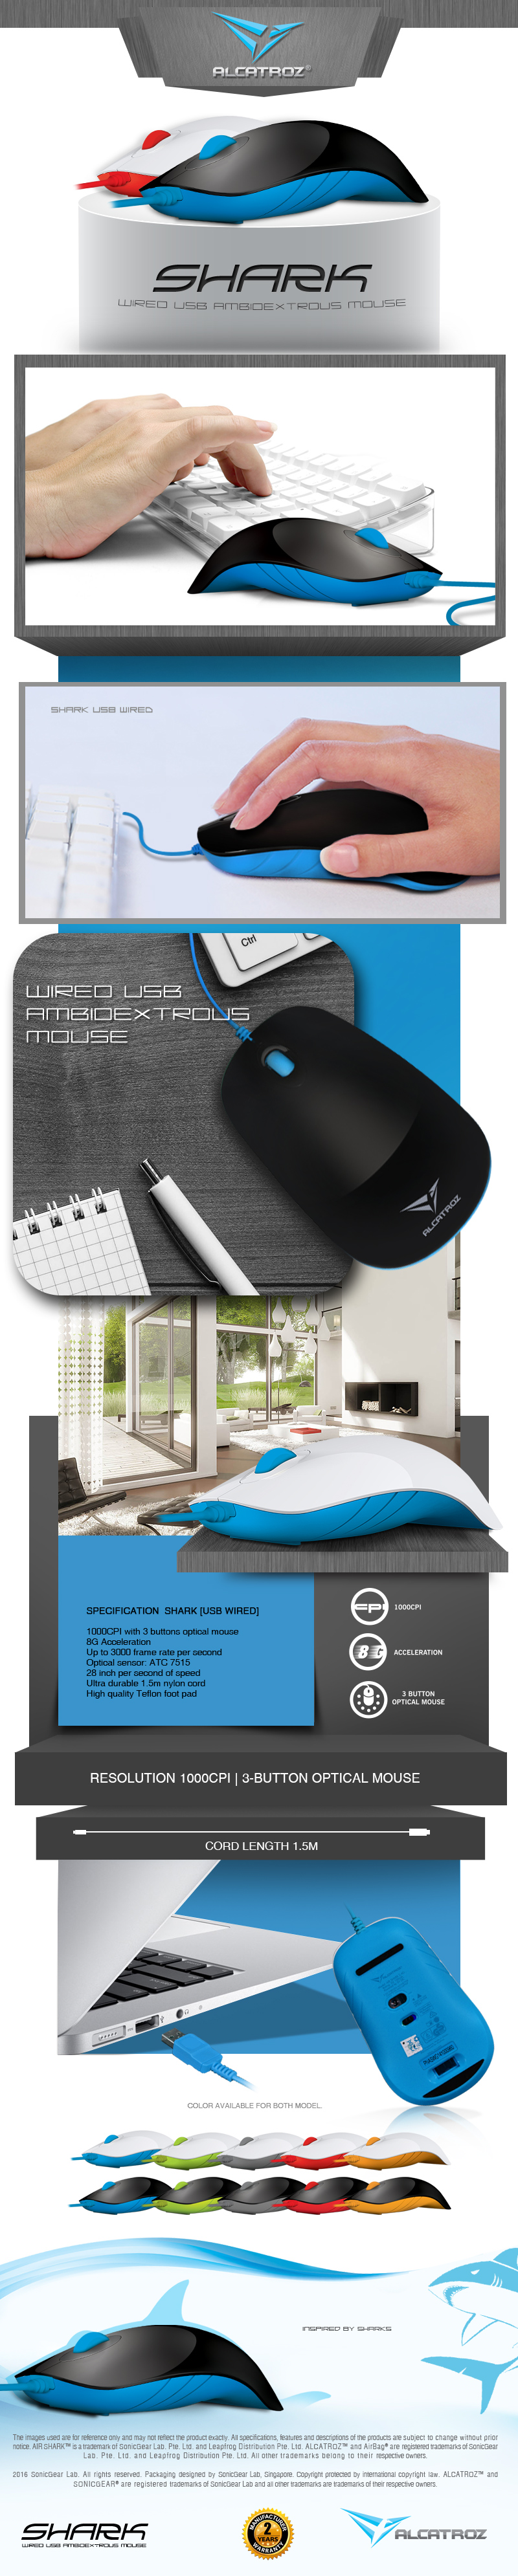 Every Need Want Day Mouse Alcatroz Lithium L2 Looking For Wireless